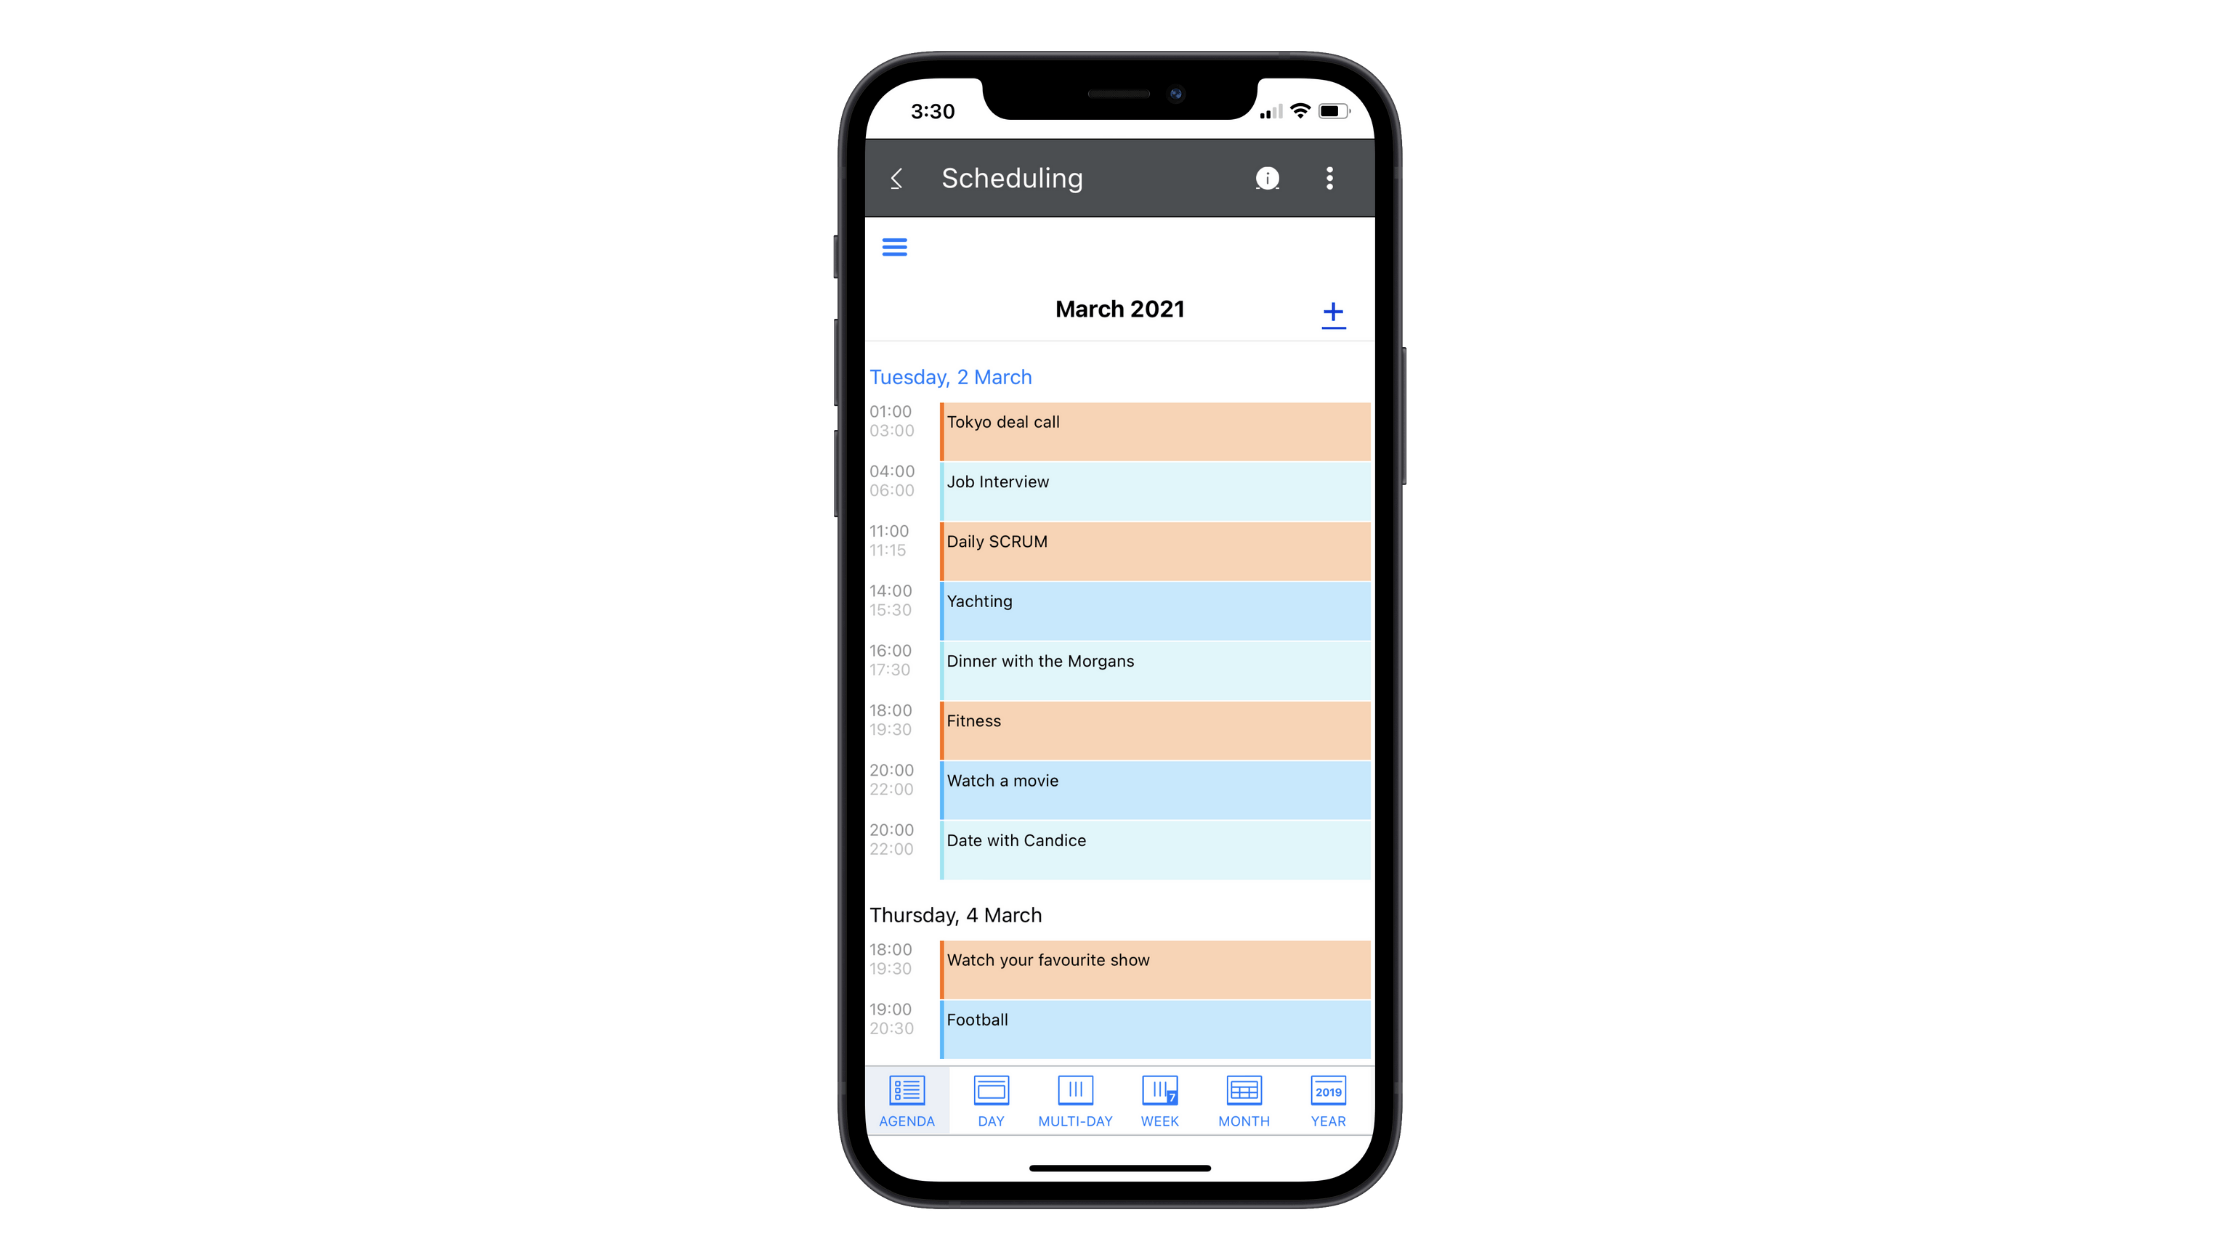 This scheduling component is part of the Telerik UI for Xamarin library. In this example, we see what a schedule for March 2021 looks like in the Agenda view.